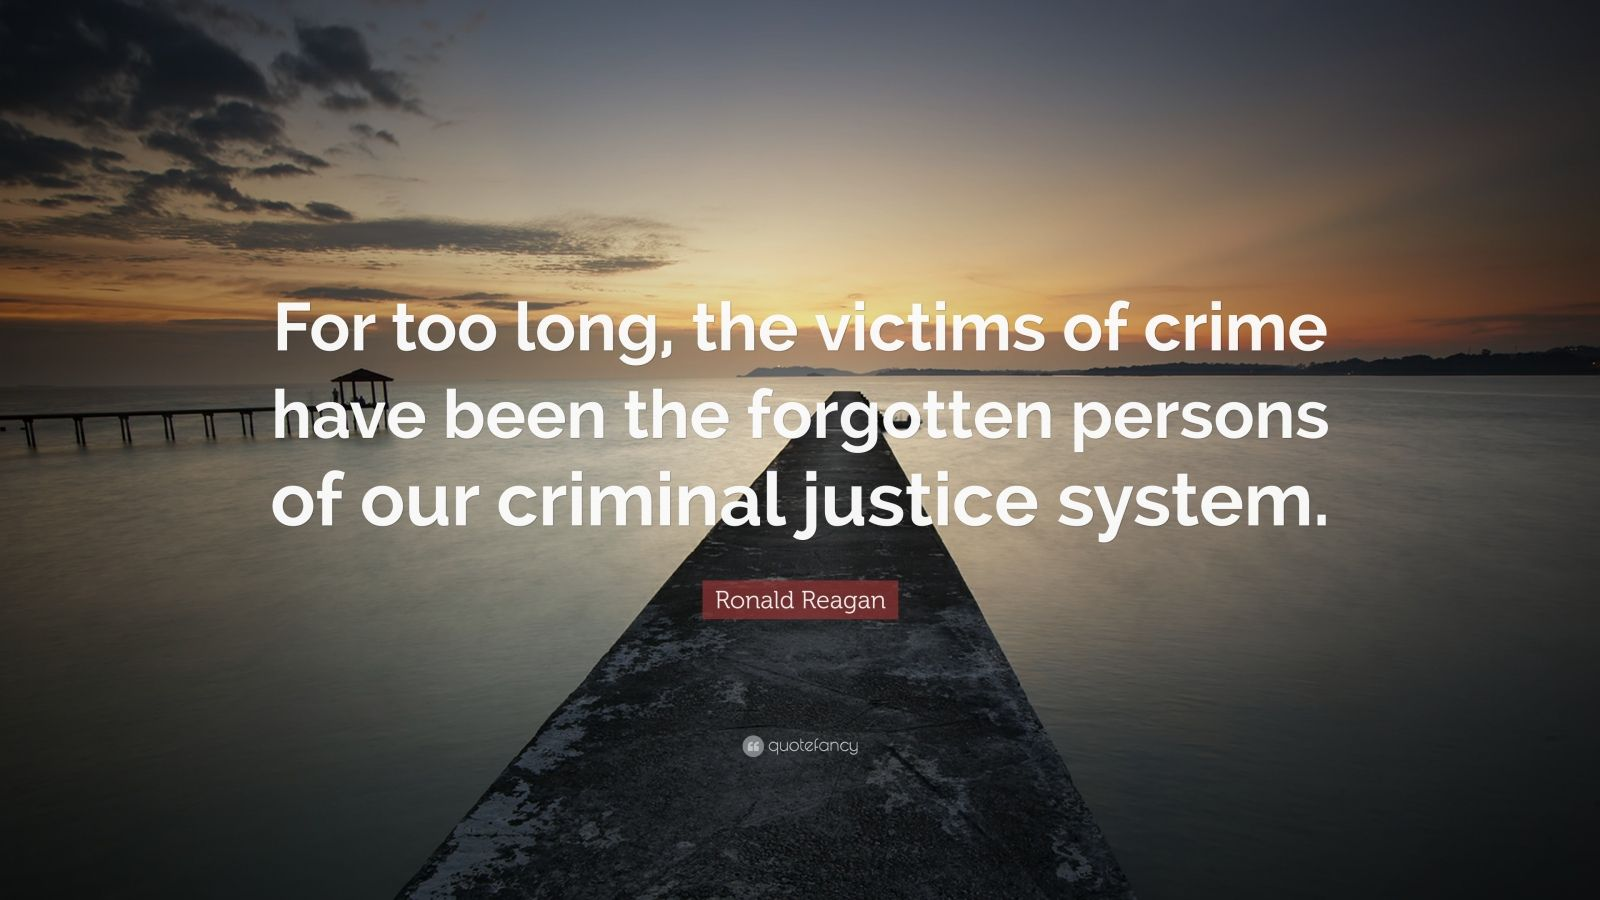 Obama Wallpaper Quote Ronald Reagan Quote For Too Long The Victims Of Crime